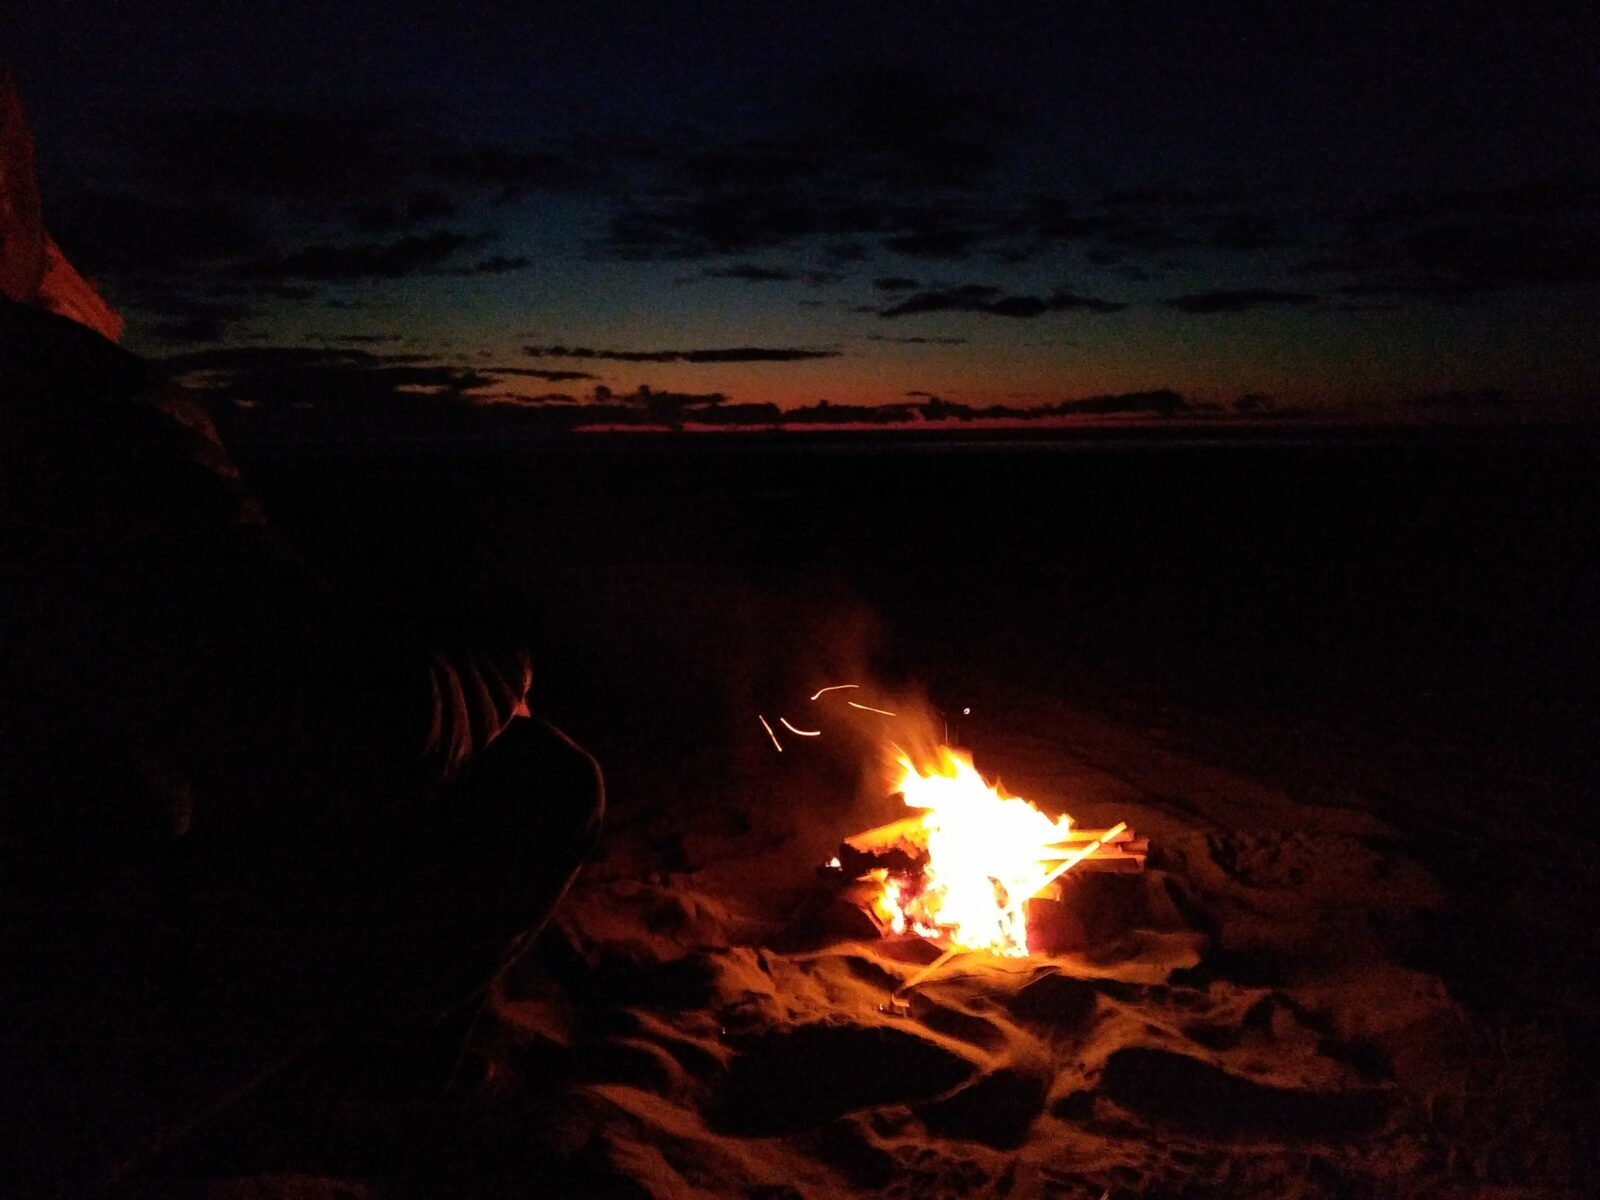 A fire in the sand on the beach after sunset. There is still a bit of sunset color on the horizon